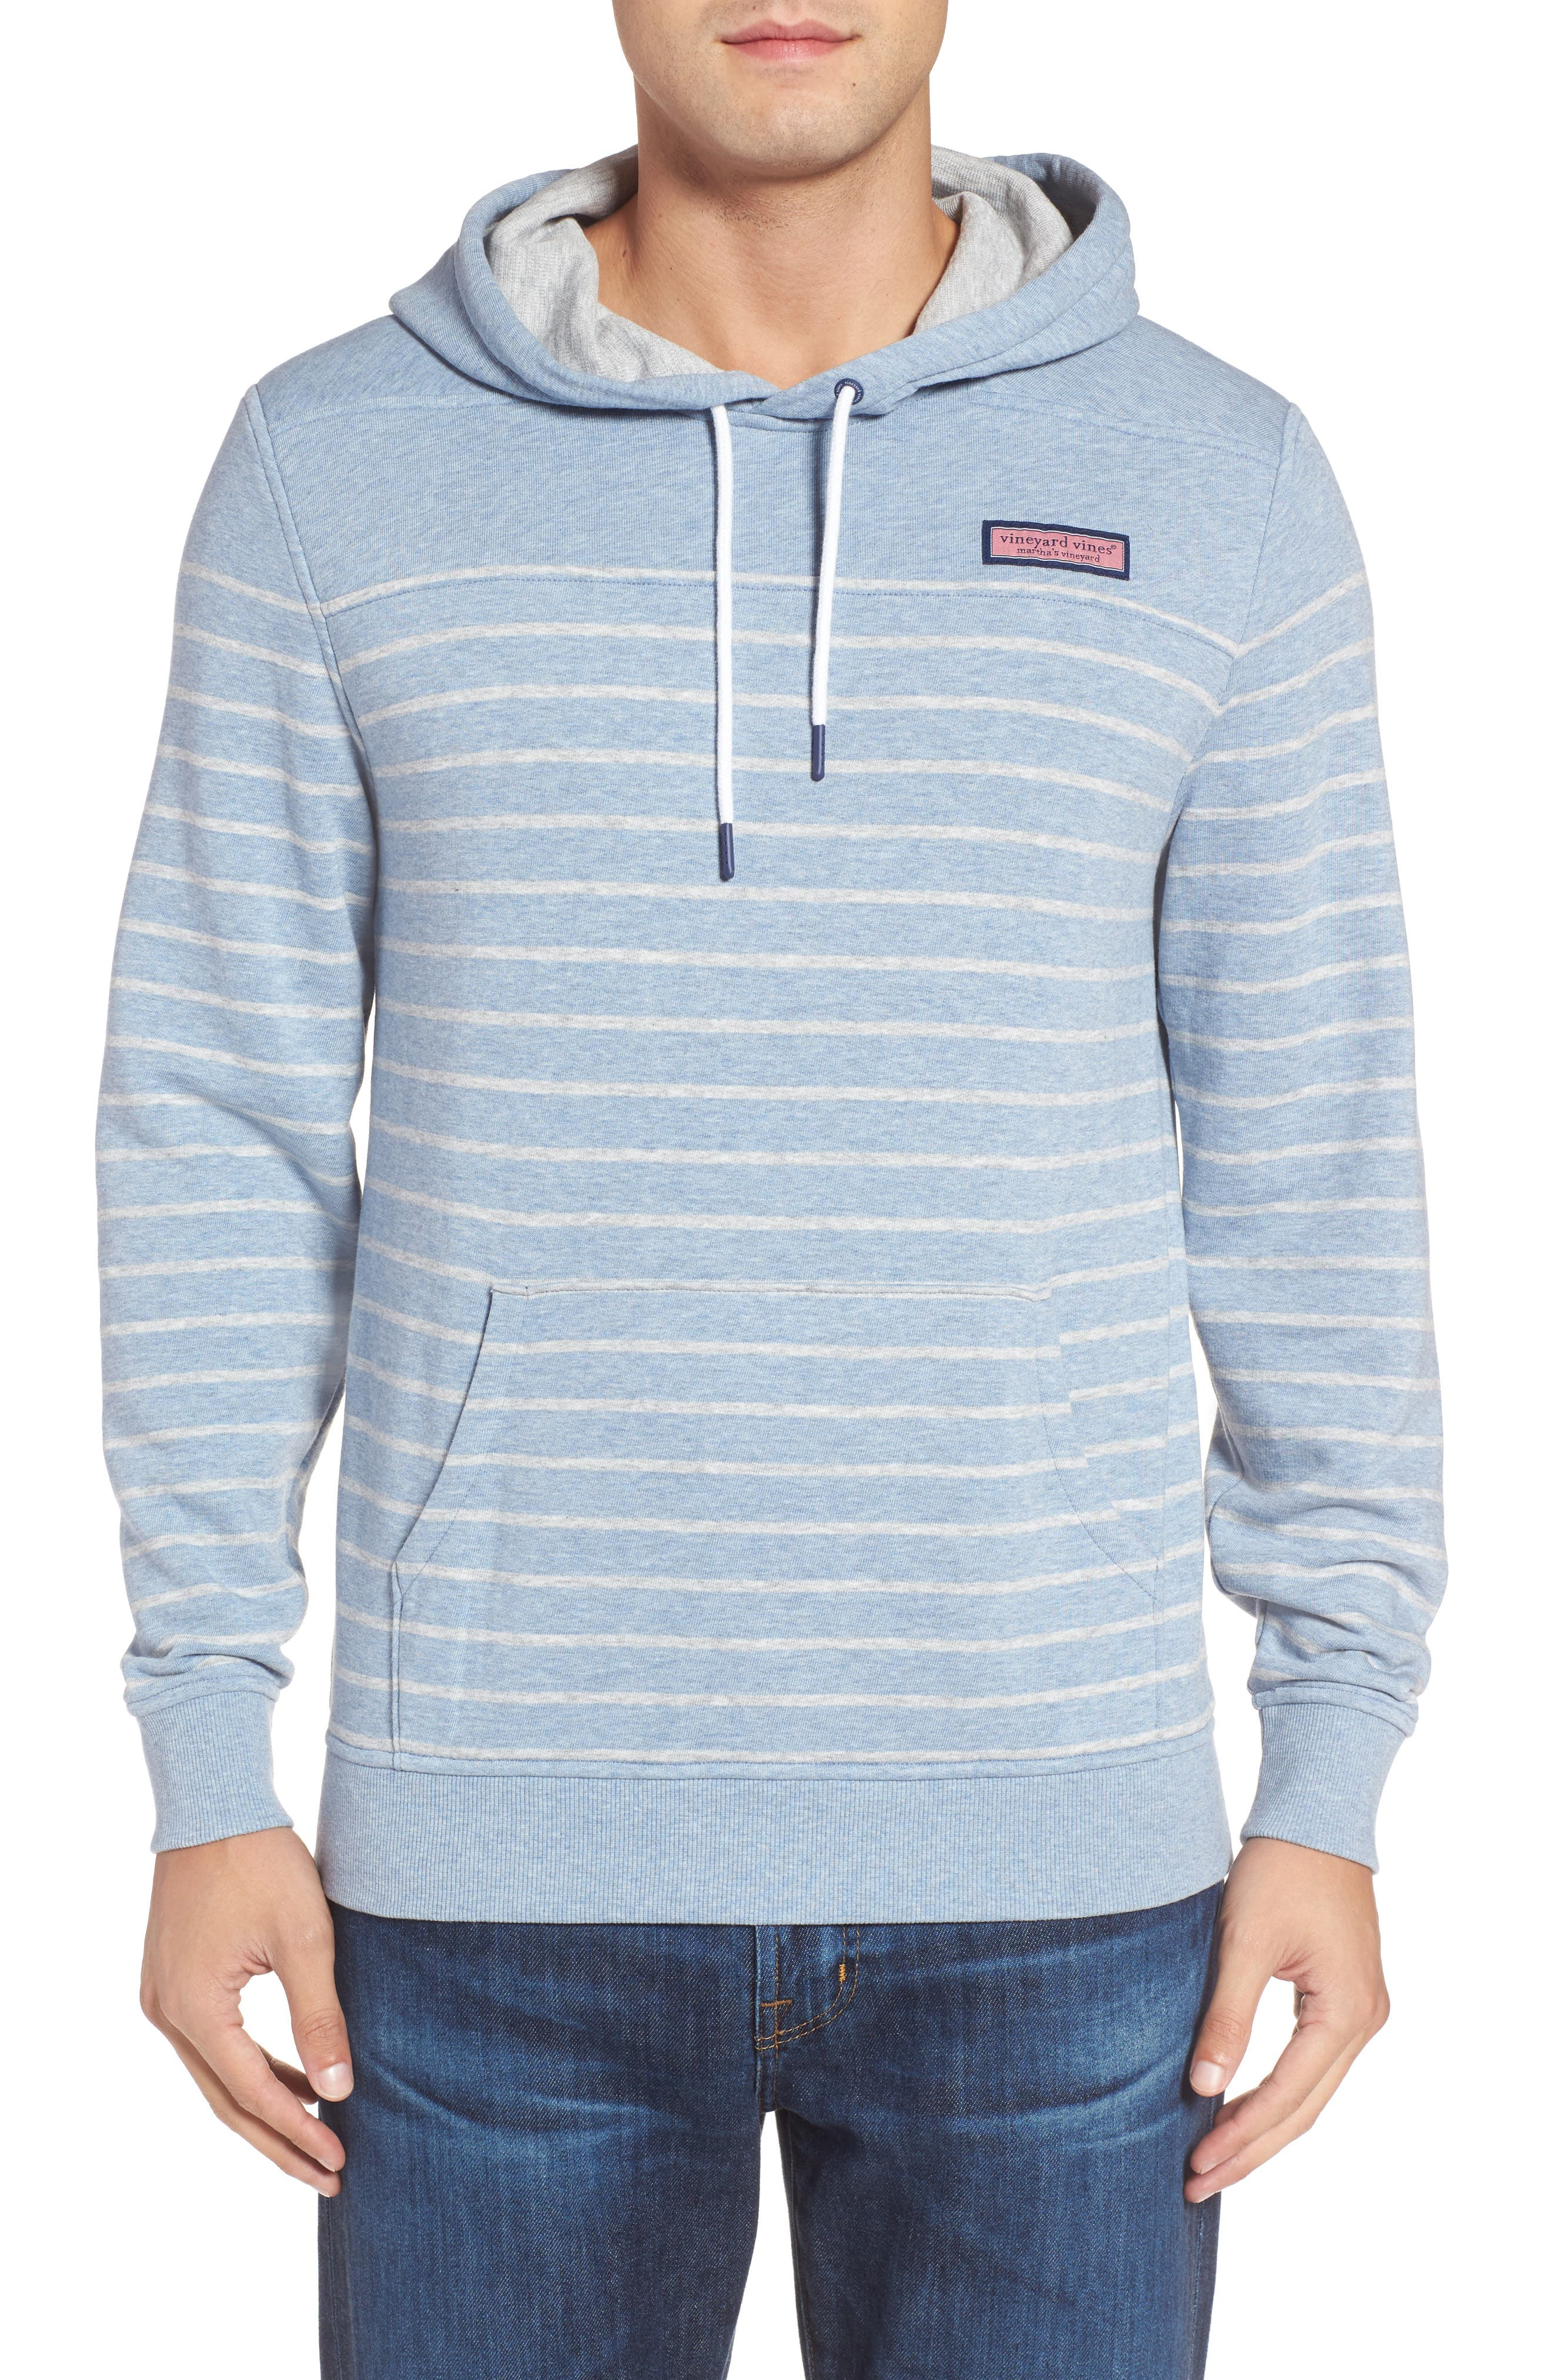 Main Image - vineyard vines Stripe Washed Cotton Pullover Hoodie